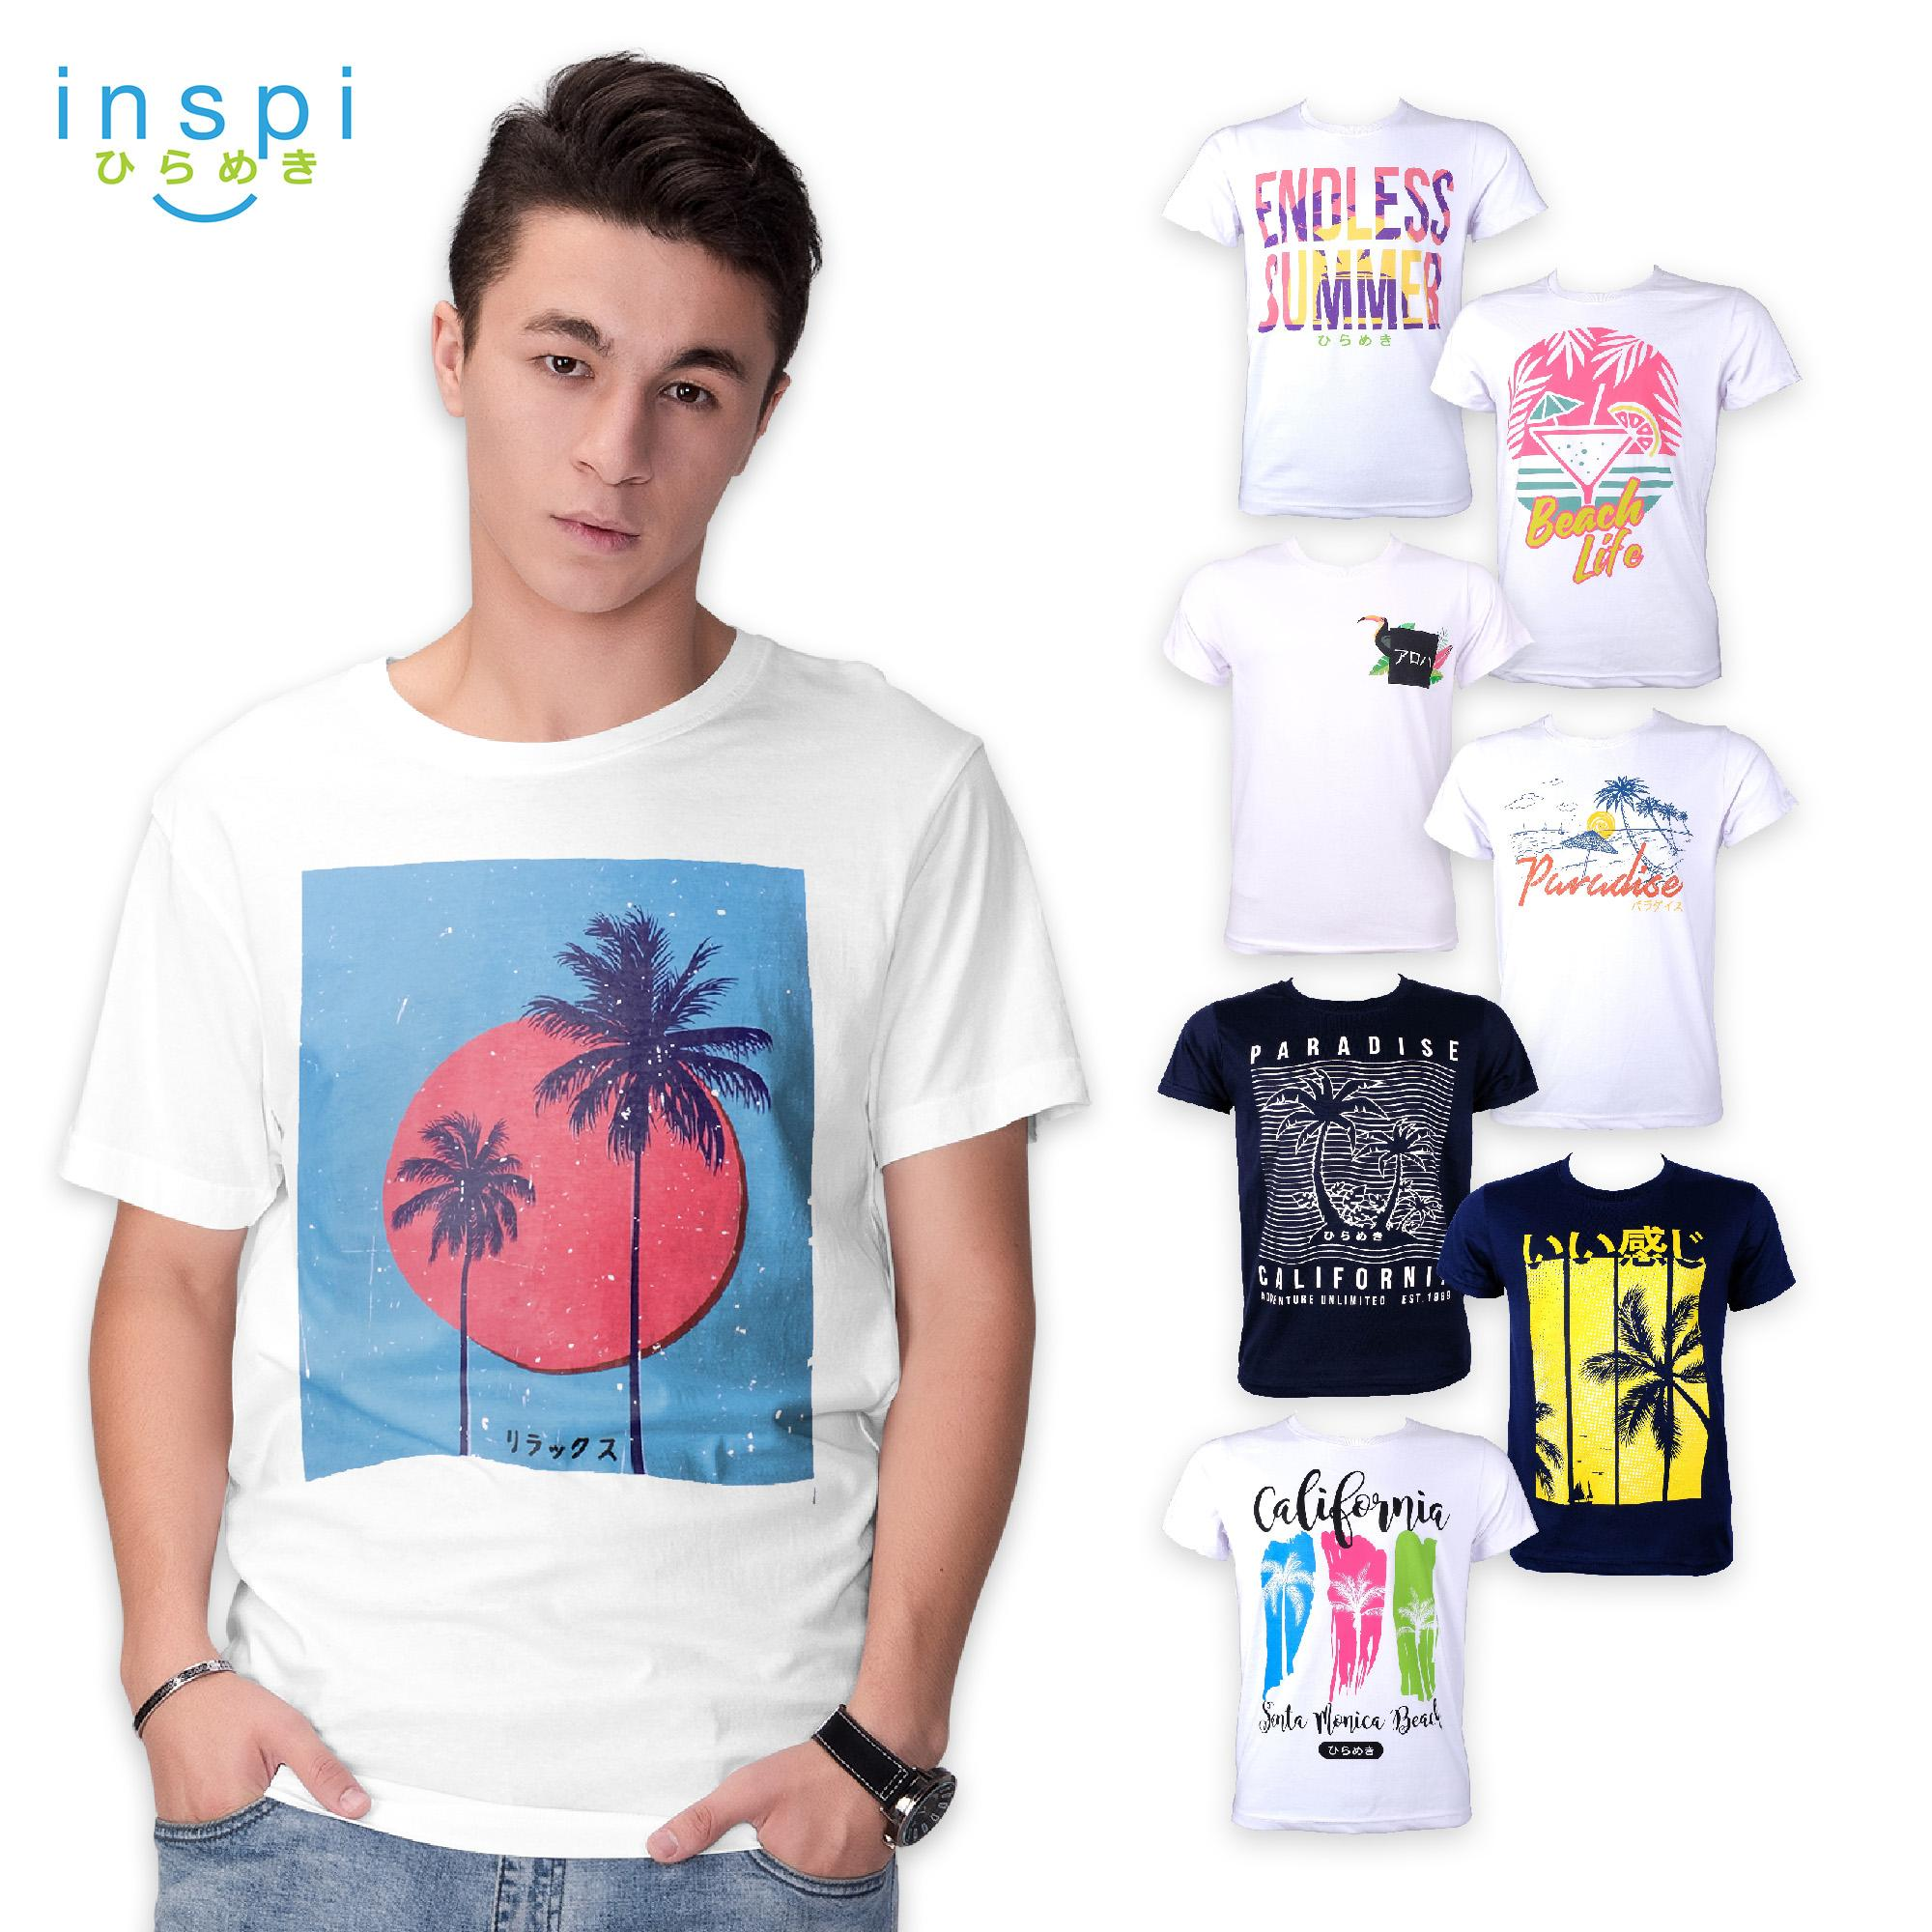 f3ce33a22a2 INSPI Tees Summer Collection tshirt printed graphic tee Mens t shirt shirts  for men tshirts sale